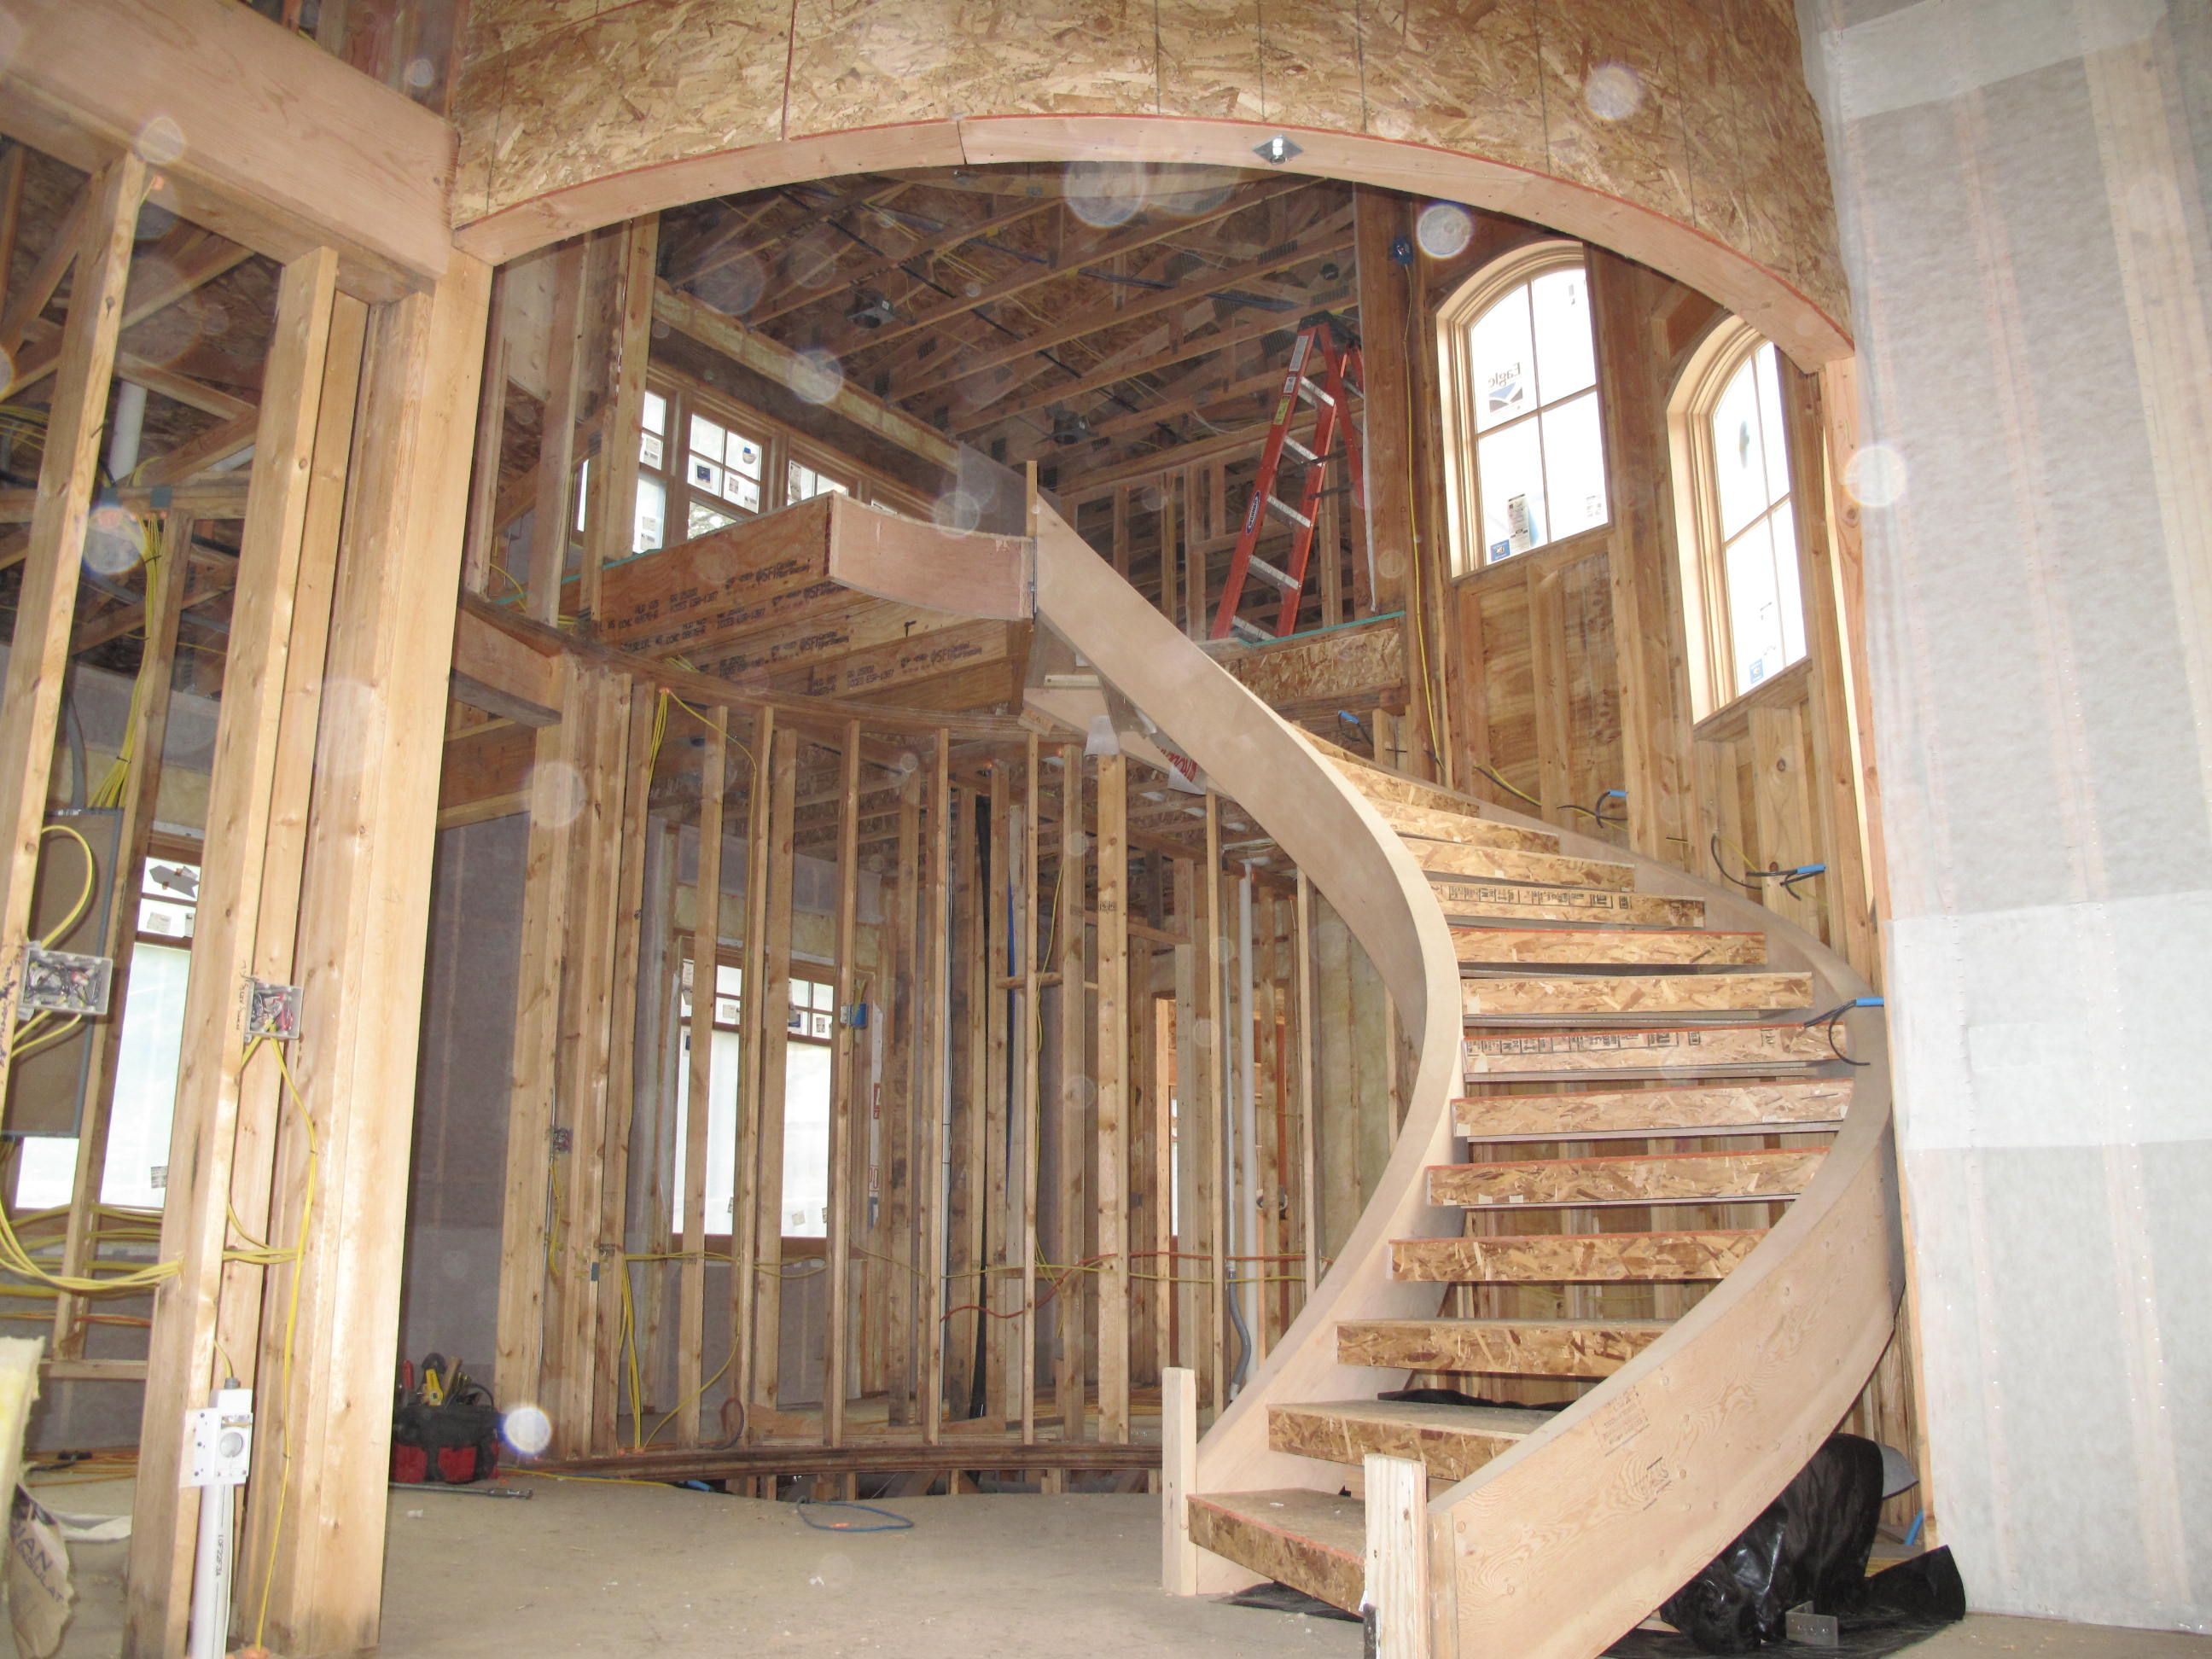 Best Winding Staircase For 12 Foot Ceilings Google Search 640 x 480